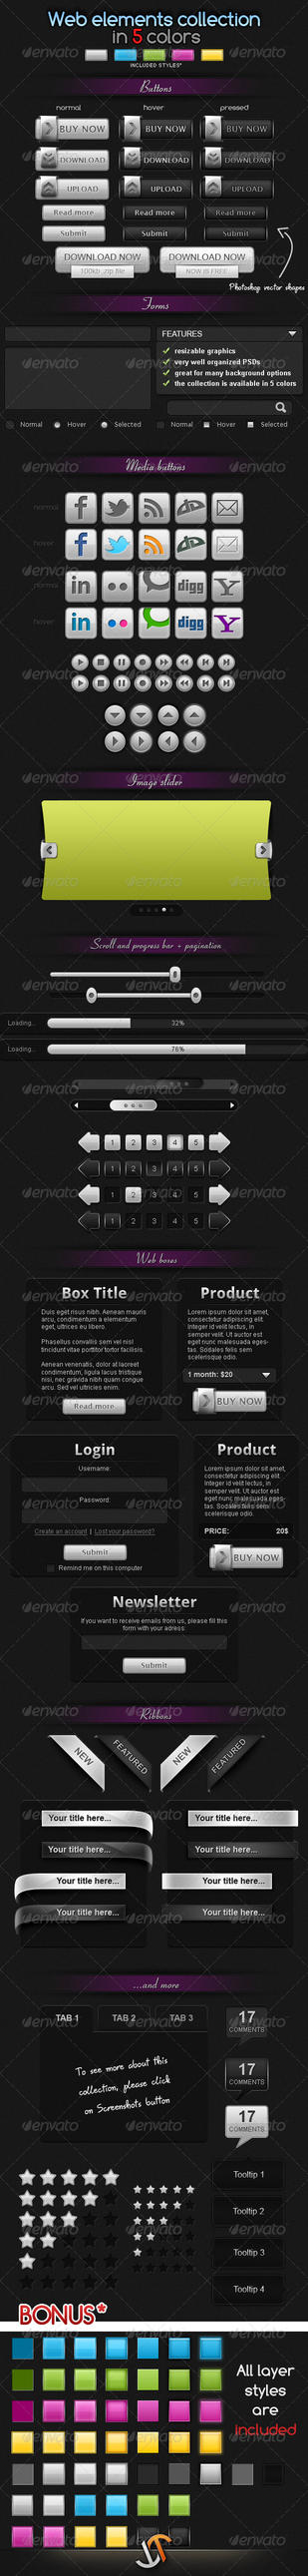 Huge web elements collection by stefusilviu